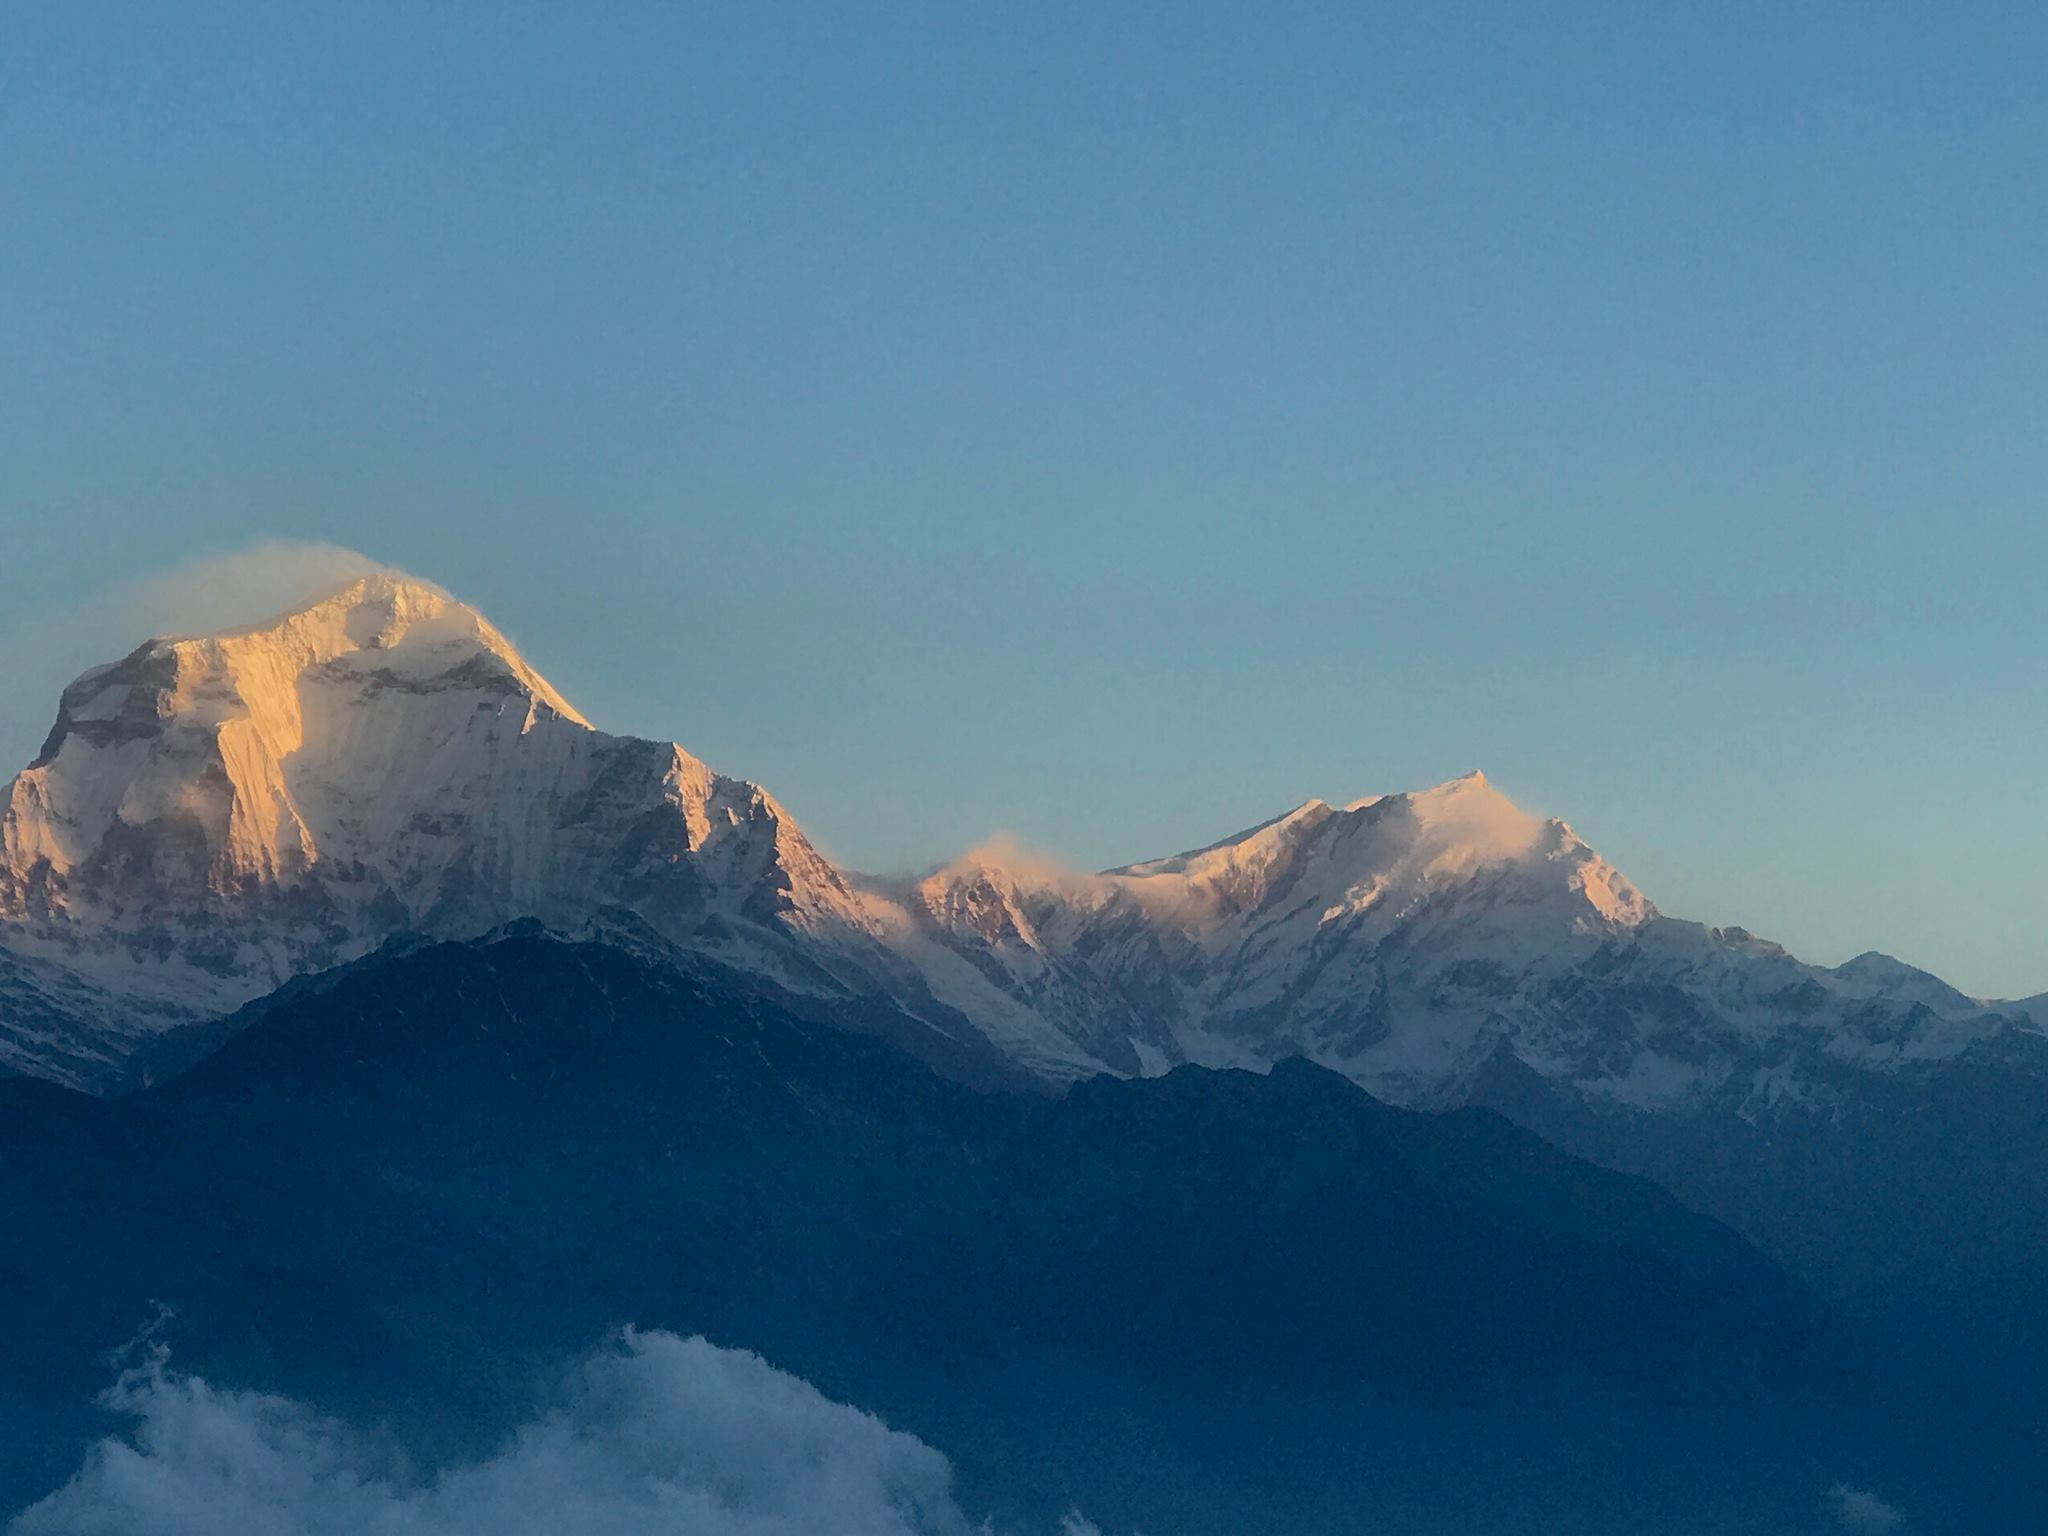 The morning sun shining on Dhauligiri, the 6th highest peak in the world.